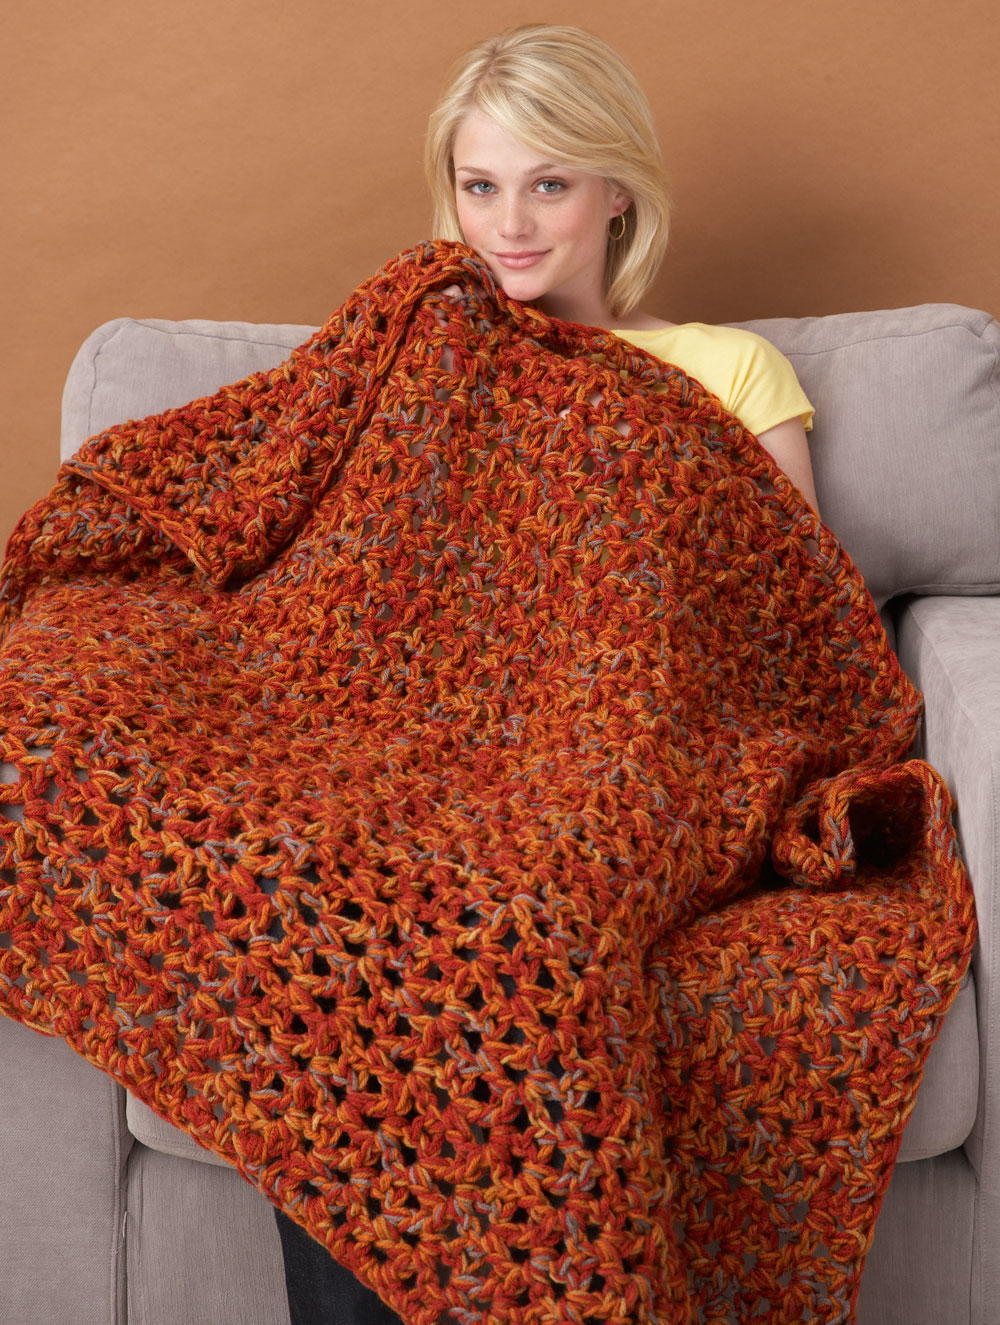 Inspirational 31 Crochet Afghan Patterns for Fall Crochet Afghans Of Marvelous 47 Models Crochet Afghans